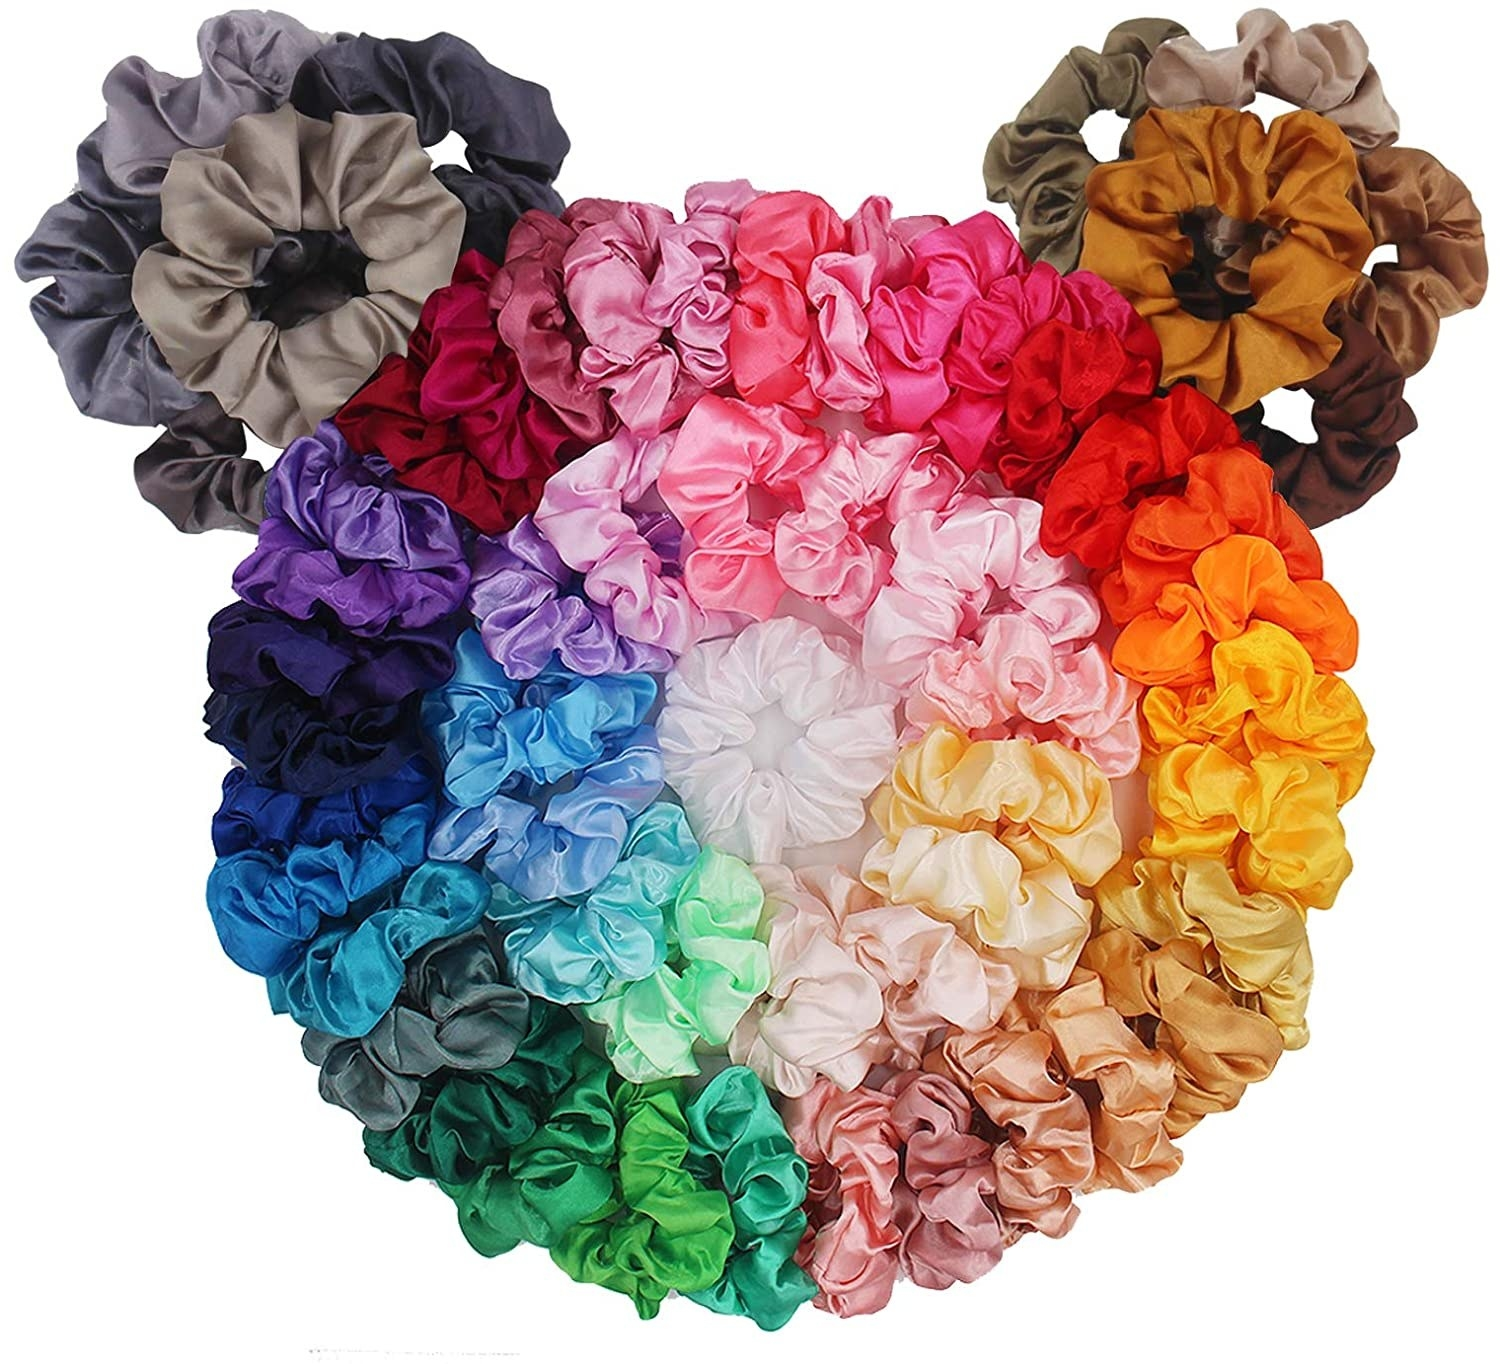 all 60 scrunchies piled together in the shape of a teddy bear